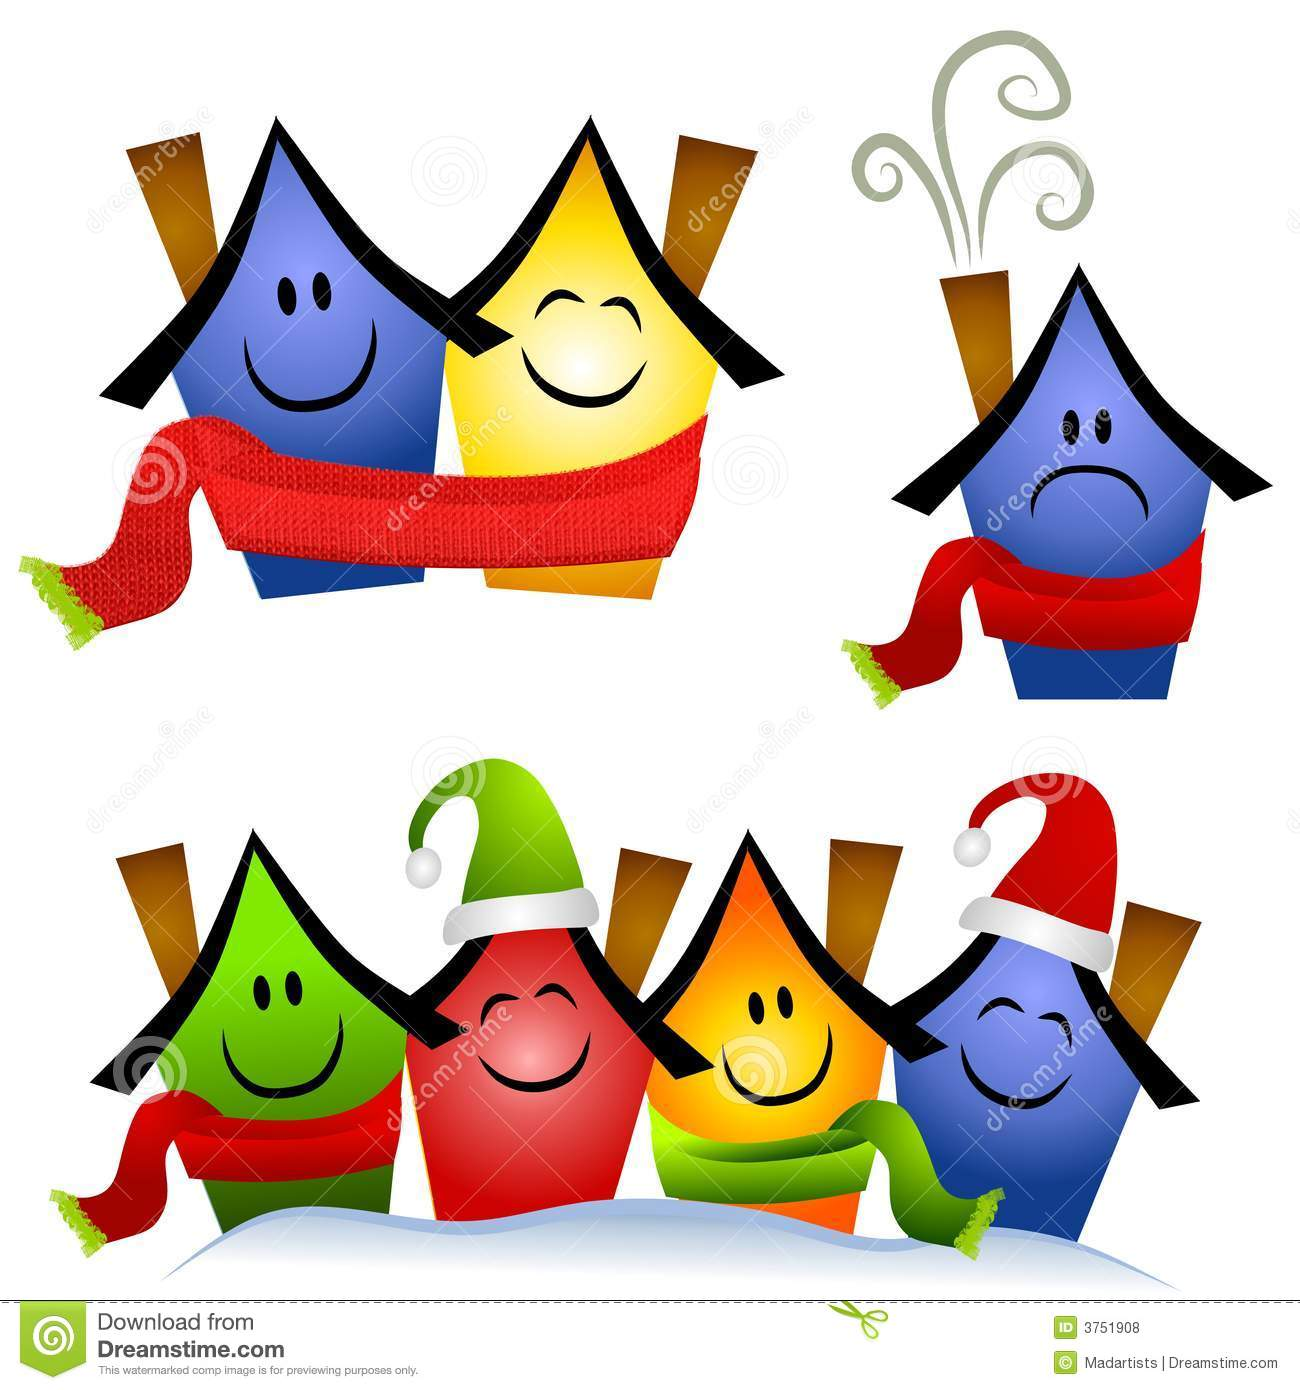 house winter clipart - photo #23